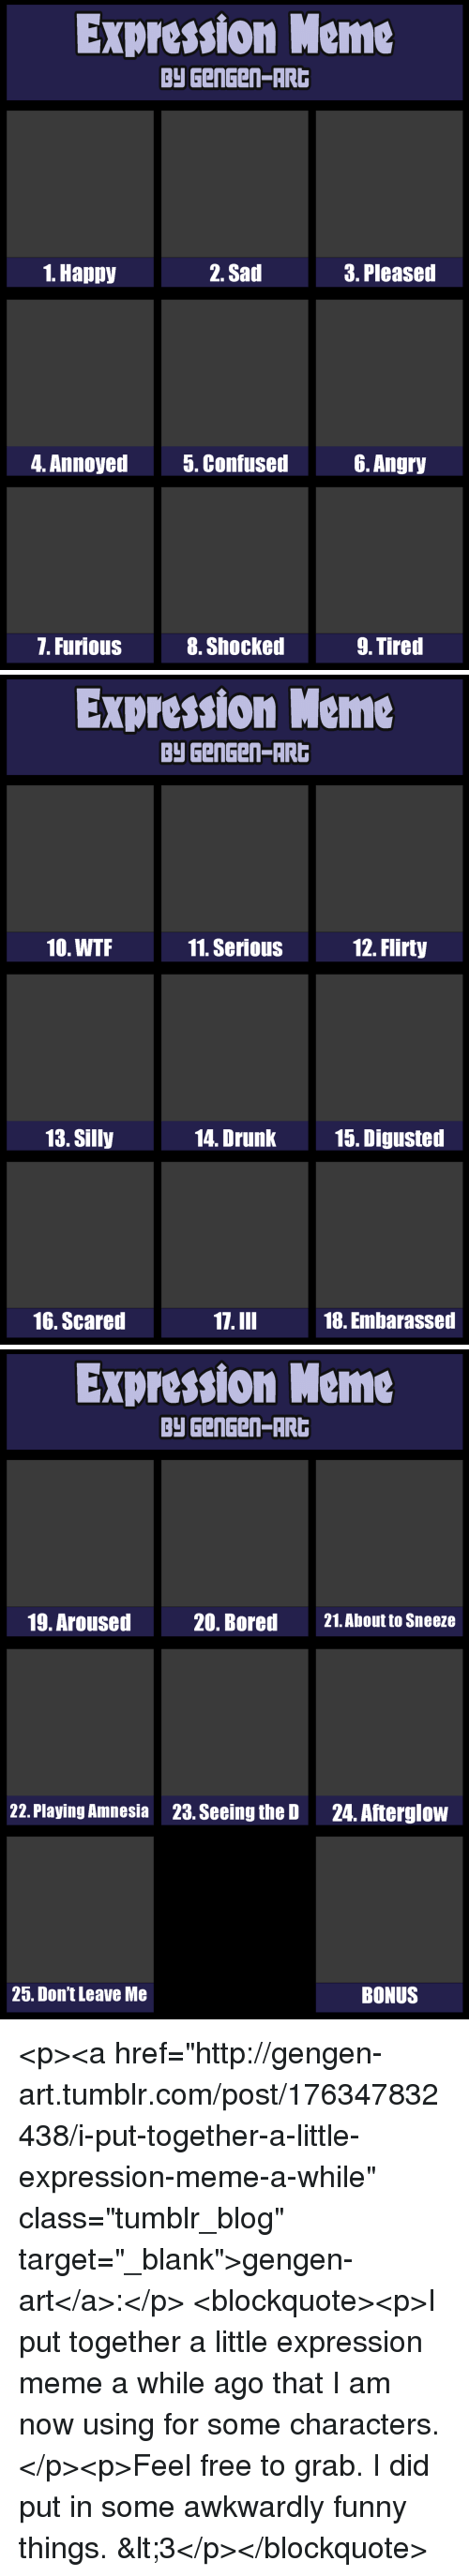 """Bored, Drunk, and Funny: Expression Meme  Py GenGen-AR  1. Happy  2. Sad  3. Pleased  4. Annoyed  5. Confused6. Angry  7. Furious  8. Shocked  9. Tired   Expression Meme  Py GenGen-AR  10. WTF  11. SeriouS  12. Flirty  13. Silly  14. Drunk  15. Digusted  16. Scared  17.III  18. Embarassed   Expression Meme  Py GenGen-AR  19. Aroused  20. Bored  21.About to Sneeze  22. Playing Amnesia  23. Seeing the D  24. Afterglow  25. Don't Leave Me  BONUS <p><a href=""""http://gengen-art.tumblr.com/post/176347832438/i-put-together-a-little-expression-meme-a-while"""" class=""""tumblr_blog"""" target=""""_blank"""">gengen-art</a>:</p>  <blockquote><p>I put together a little expression meme a while ago that I am now using for some characters.</p><p>Feel free to grab. I did put in some awkwardly funny things. &lt;3</p></blockquote>"""